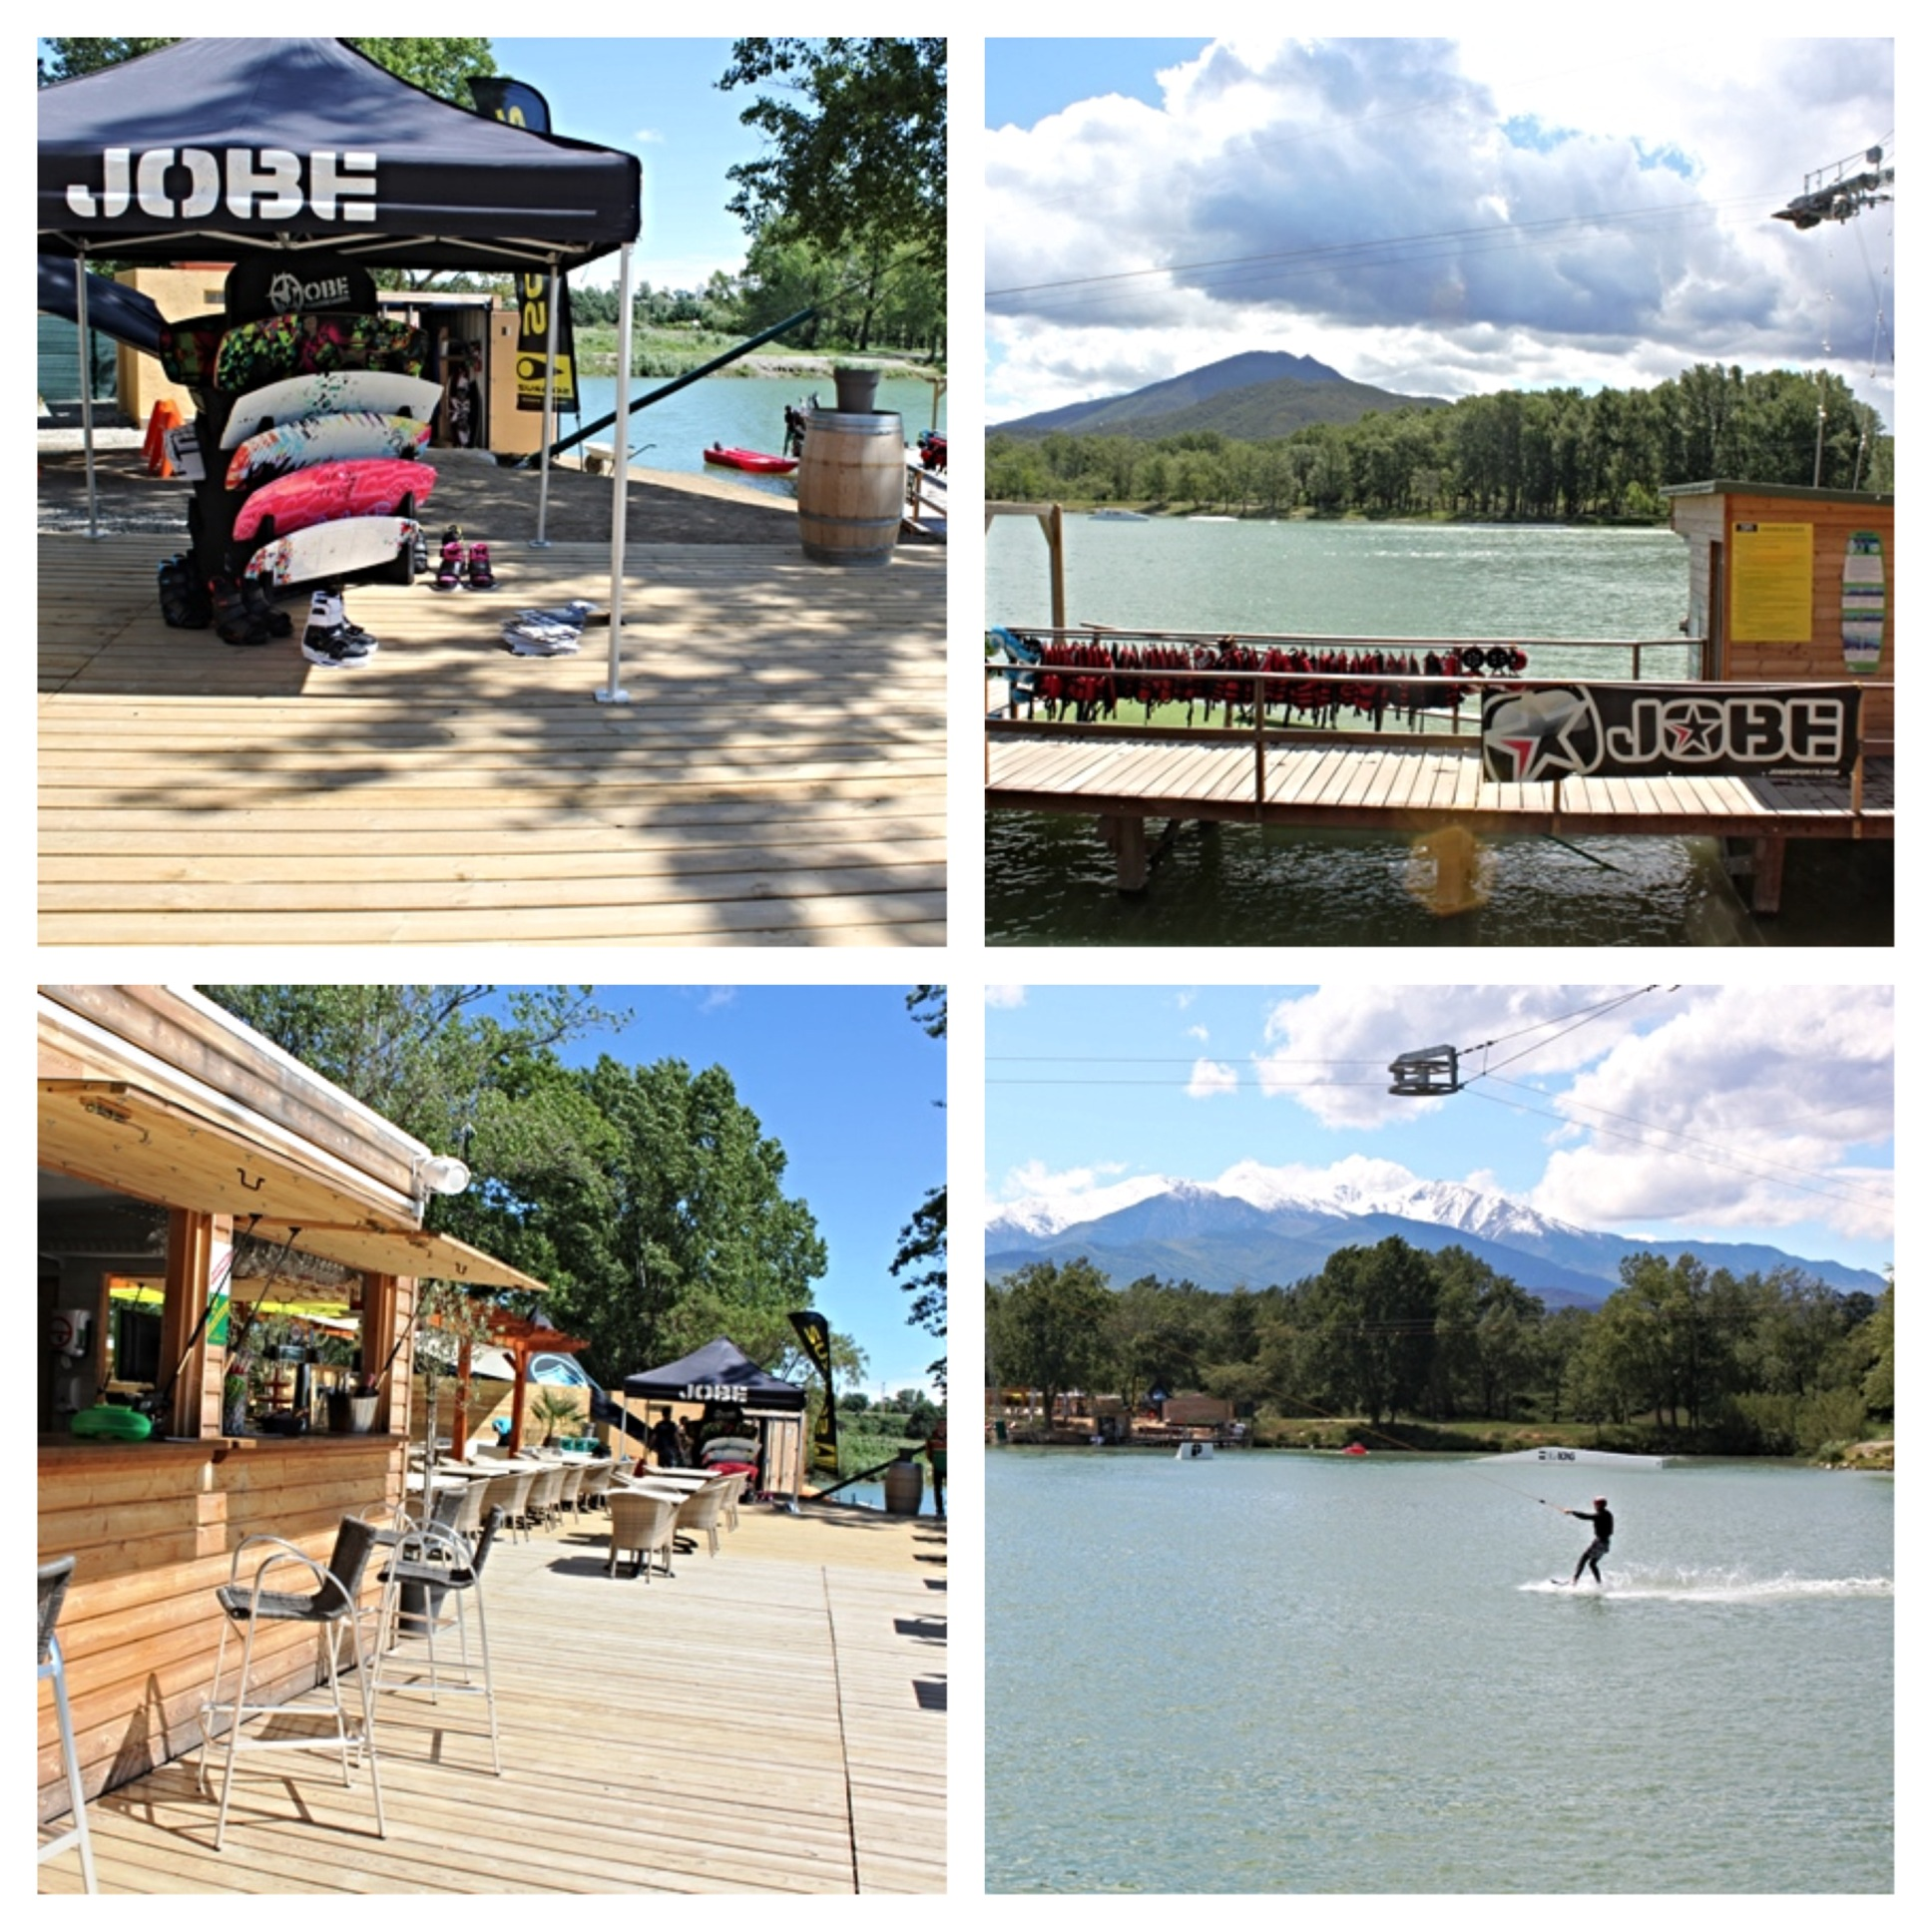 Jobe clinic test tour at French cable parks